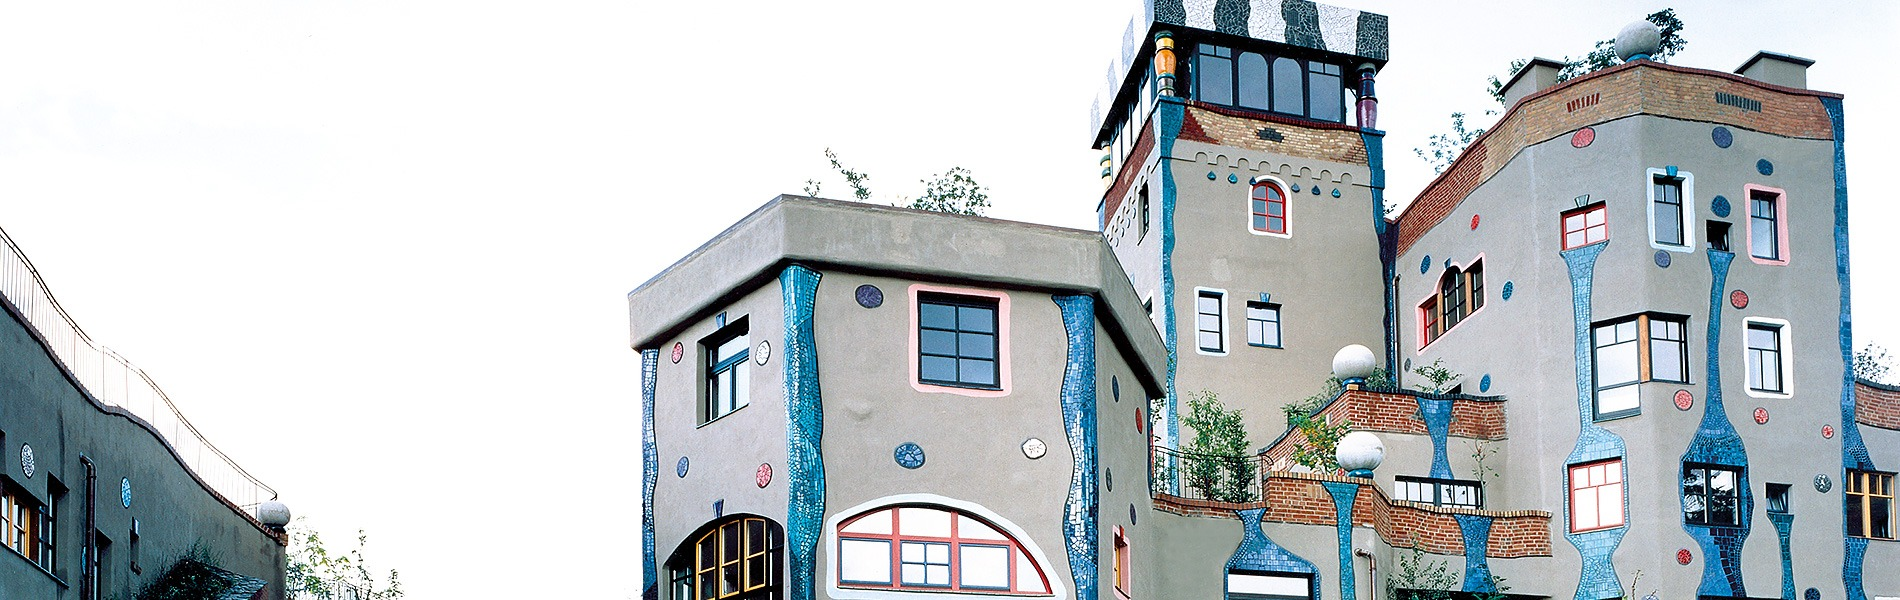 Hundertwasserhaus in Bad-Soden